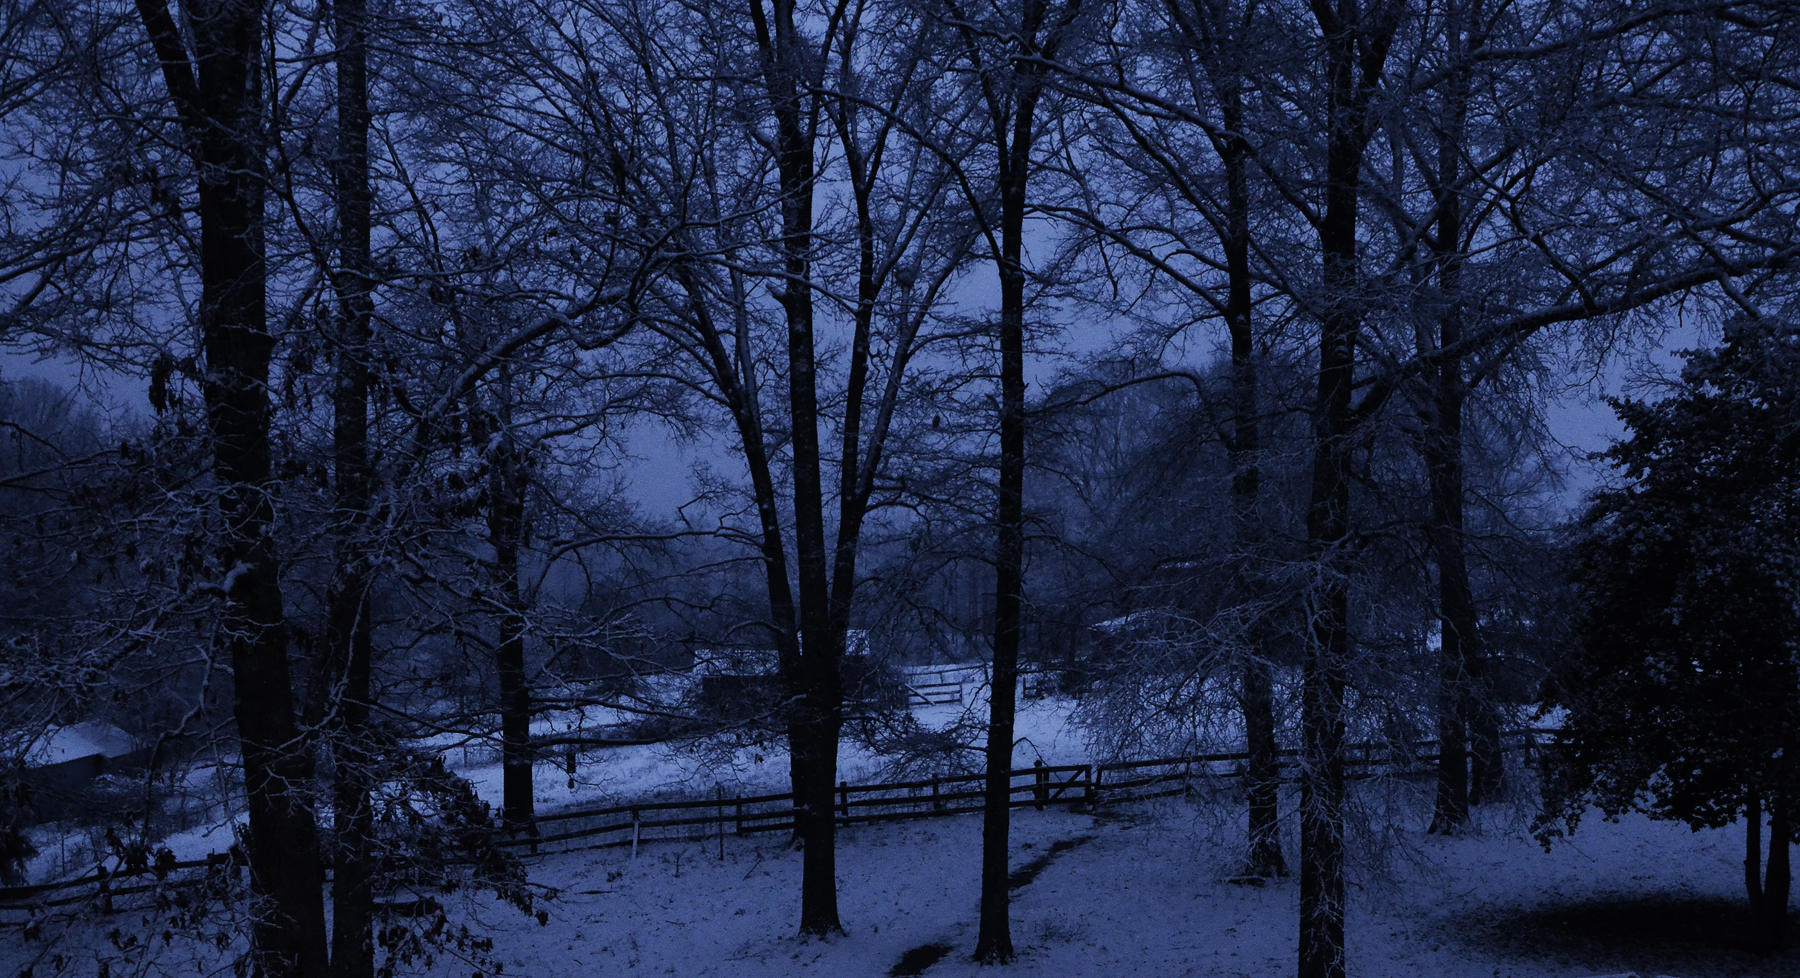 Silent snowy night on the farm love this view this was taken after